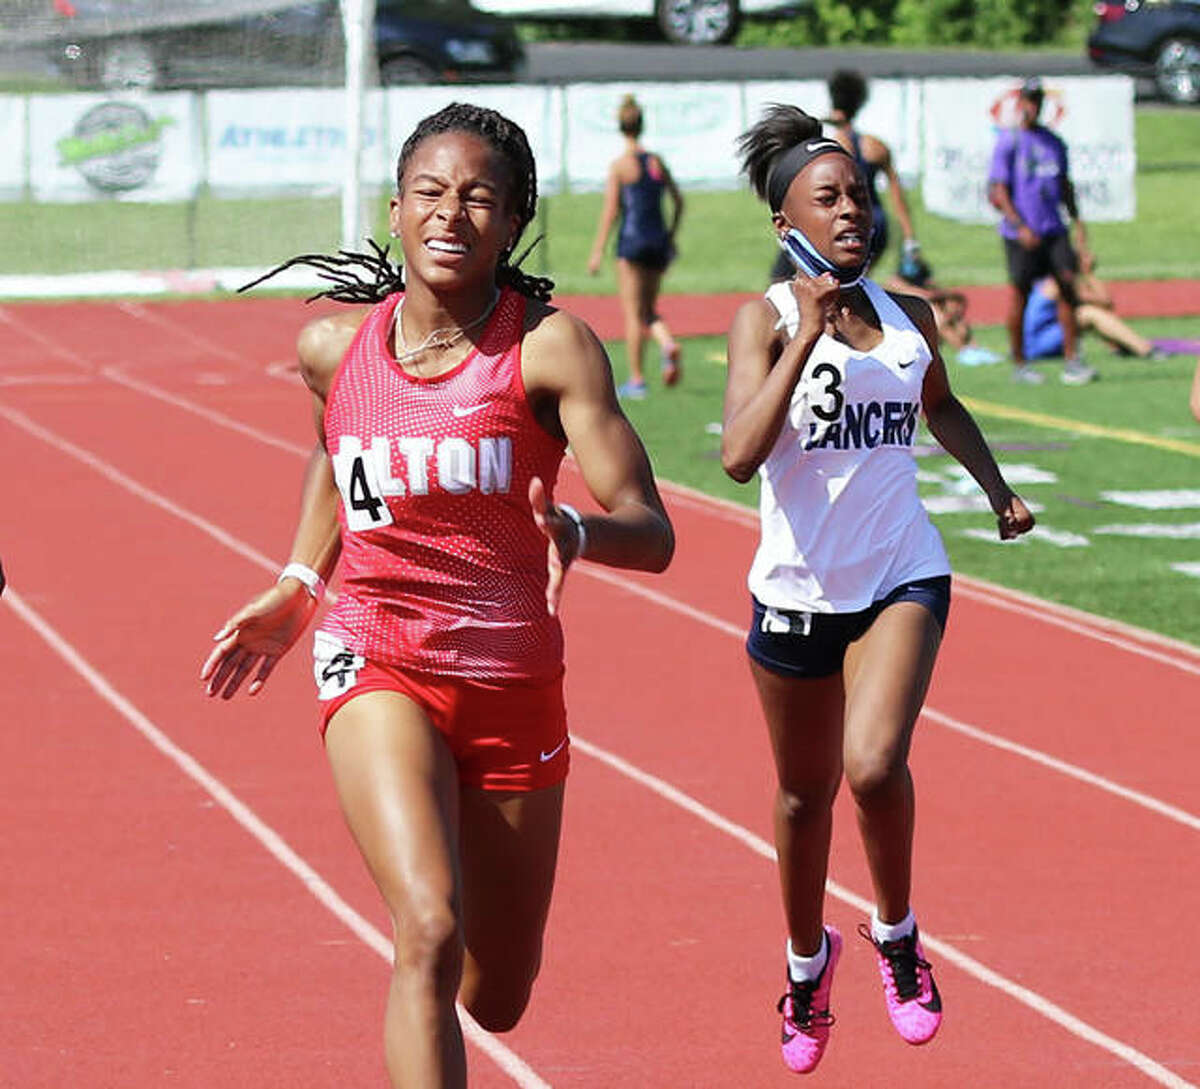 Alton junior Renee Raglin (left) wins the 200 meters to complete sprints sweep after winning the 100 at the SWC Meet on May 26 at Collinsville. Raglin is the 2021 Telegraph Large-Schools Girls Track Athlete of the Year.